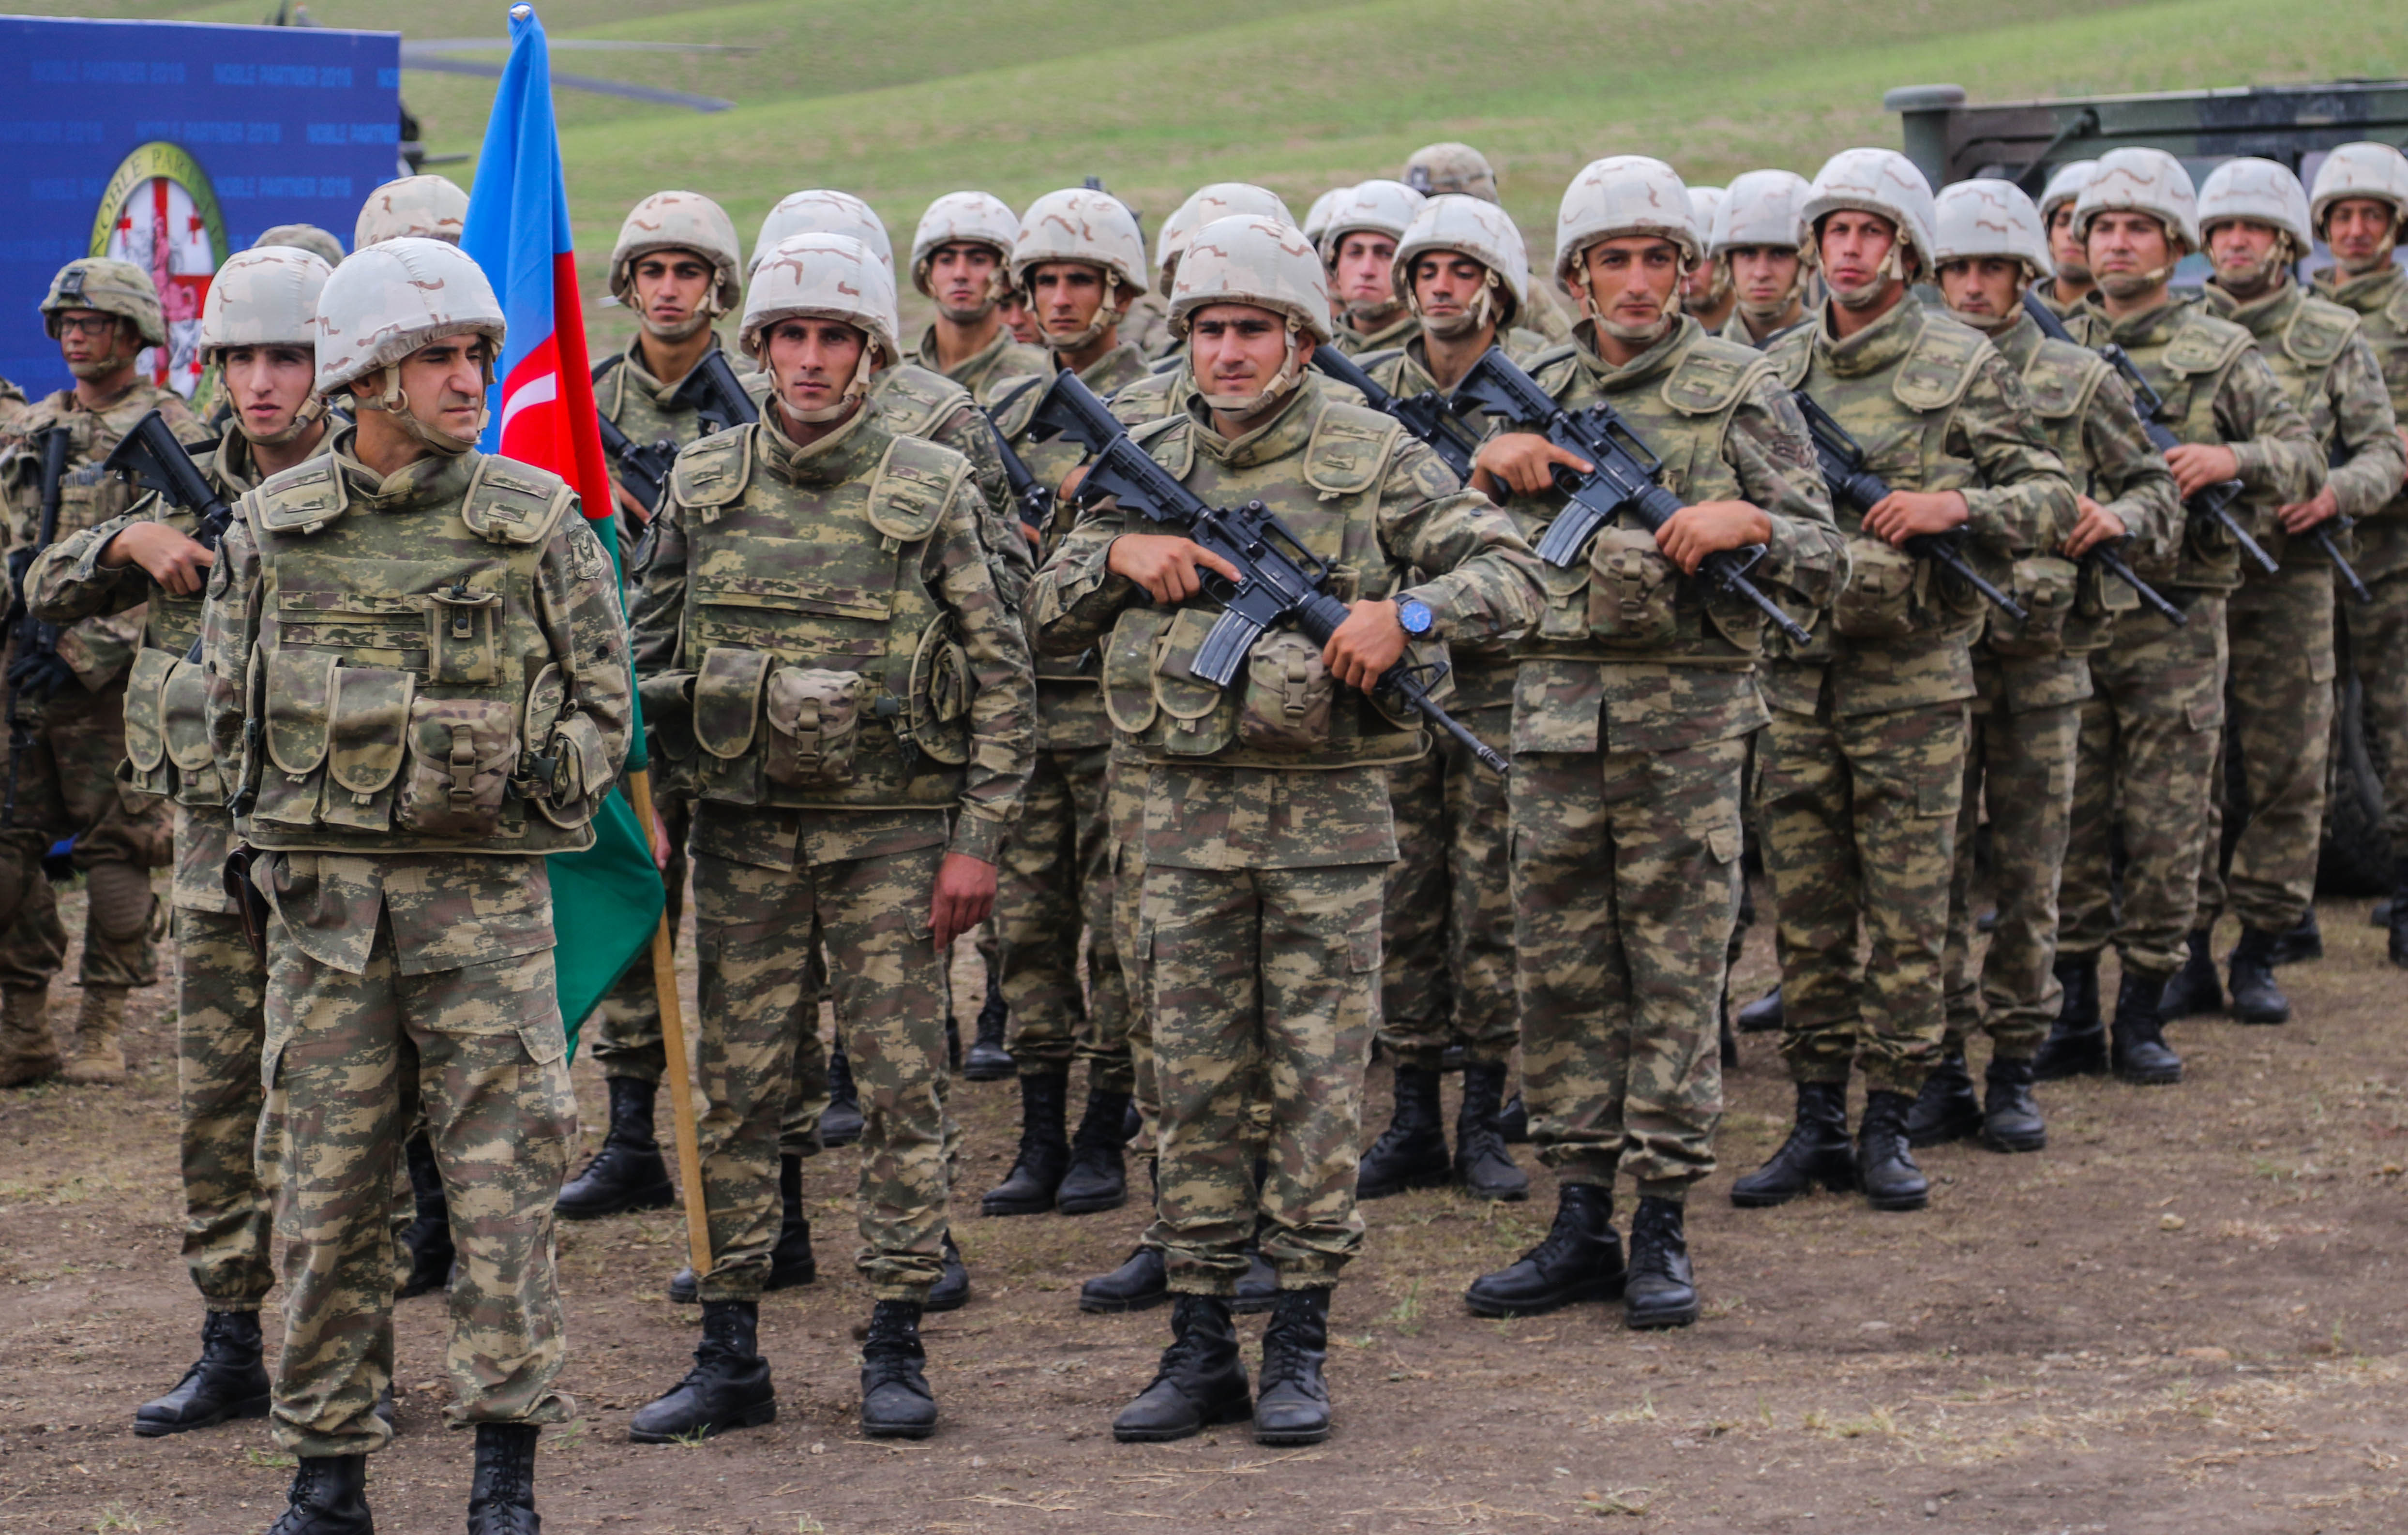 Azerbaijani army soldiers participate in the closing ceremony for Noble Partner 18 at Vaziani Training Area, Georgia, Aug. 15, 2018. Noble Partner 18 was a cooperatively-led multinational training exercise in its fourth iteration which supported the training of Georgian Armed Forces' mechanized and Special Operation Forces, U.S. Regionally Aligned Forces, the U.S. Army and Air National Guard from the state of Georgia, and 11 other participating nations. (U.S. Army photo by Sgt. Kris Bonet)